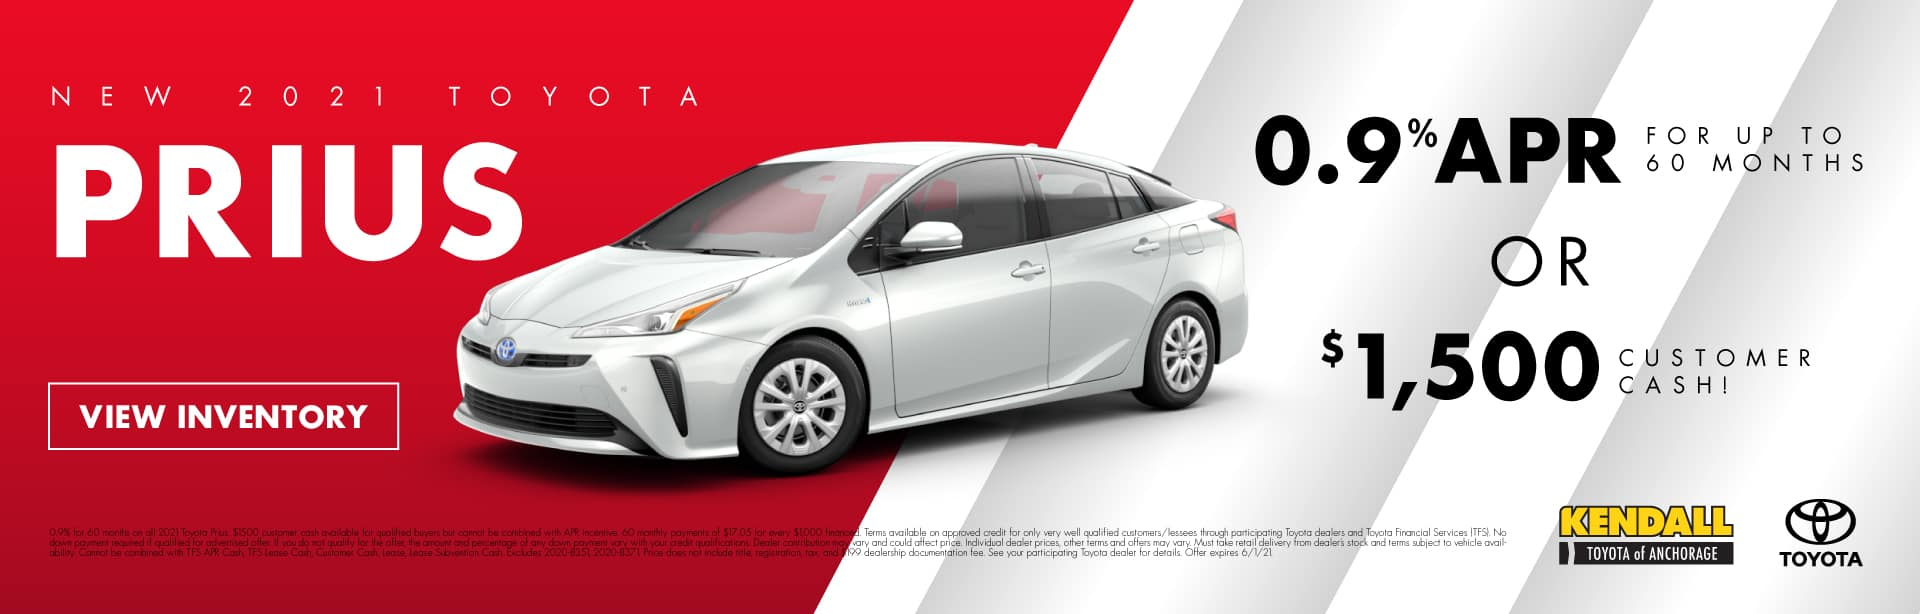 17525-anctoy-May21-Web-Banners-PRIUS